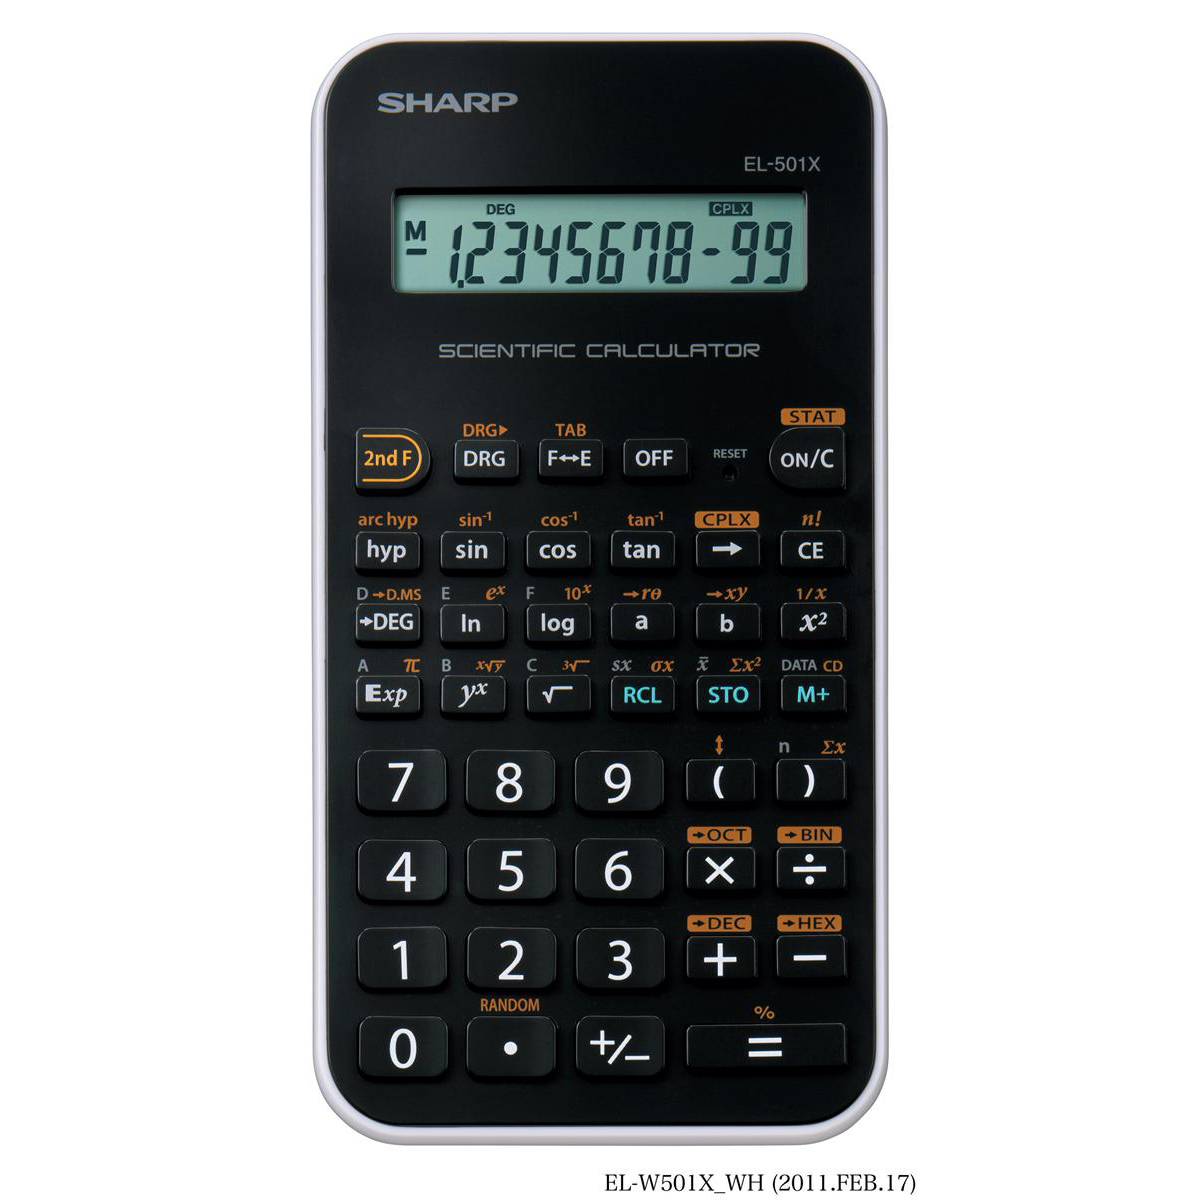 Sharp Junior Handheld Scientific Calculator 10 Digit Battery Power 75x10x144mm Black Ref EL-501X